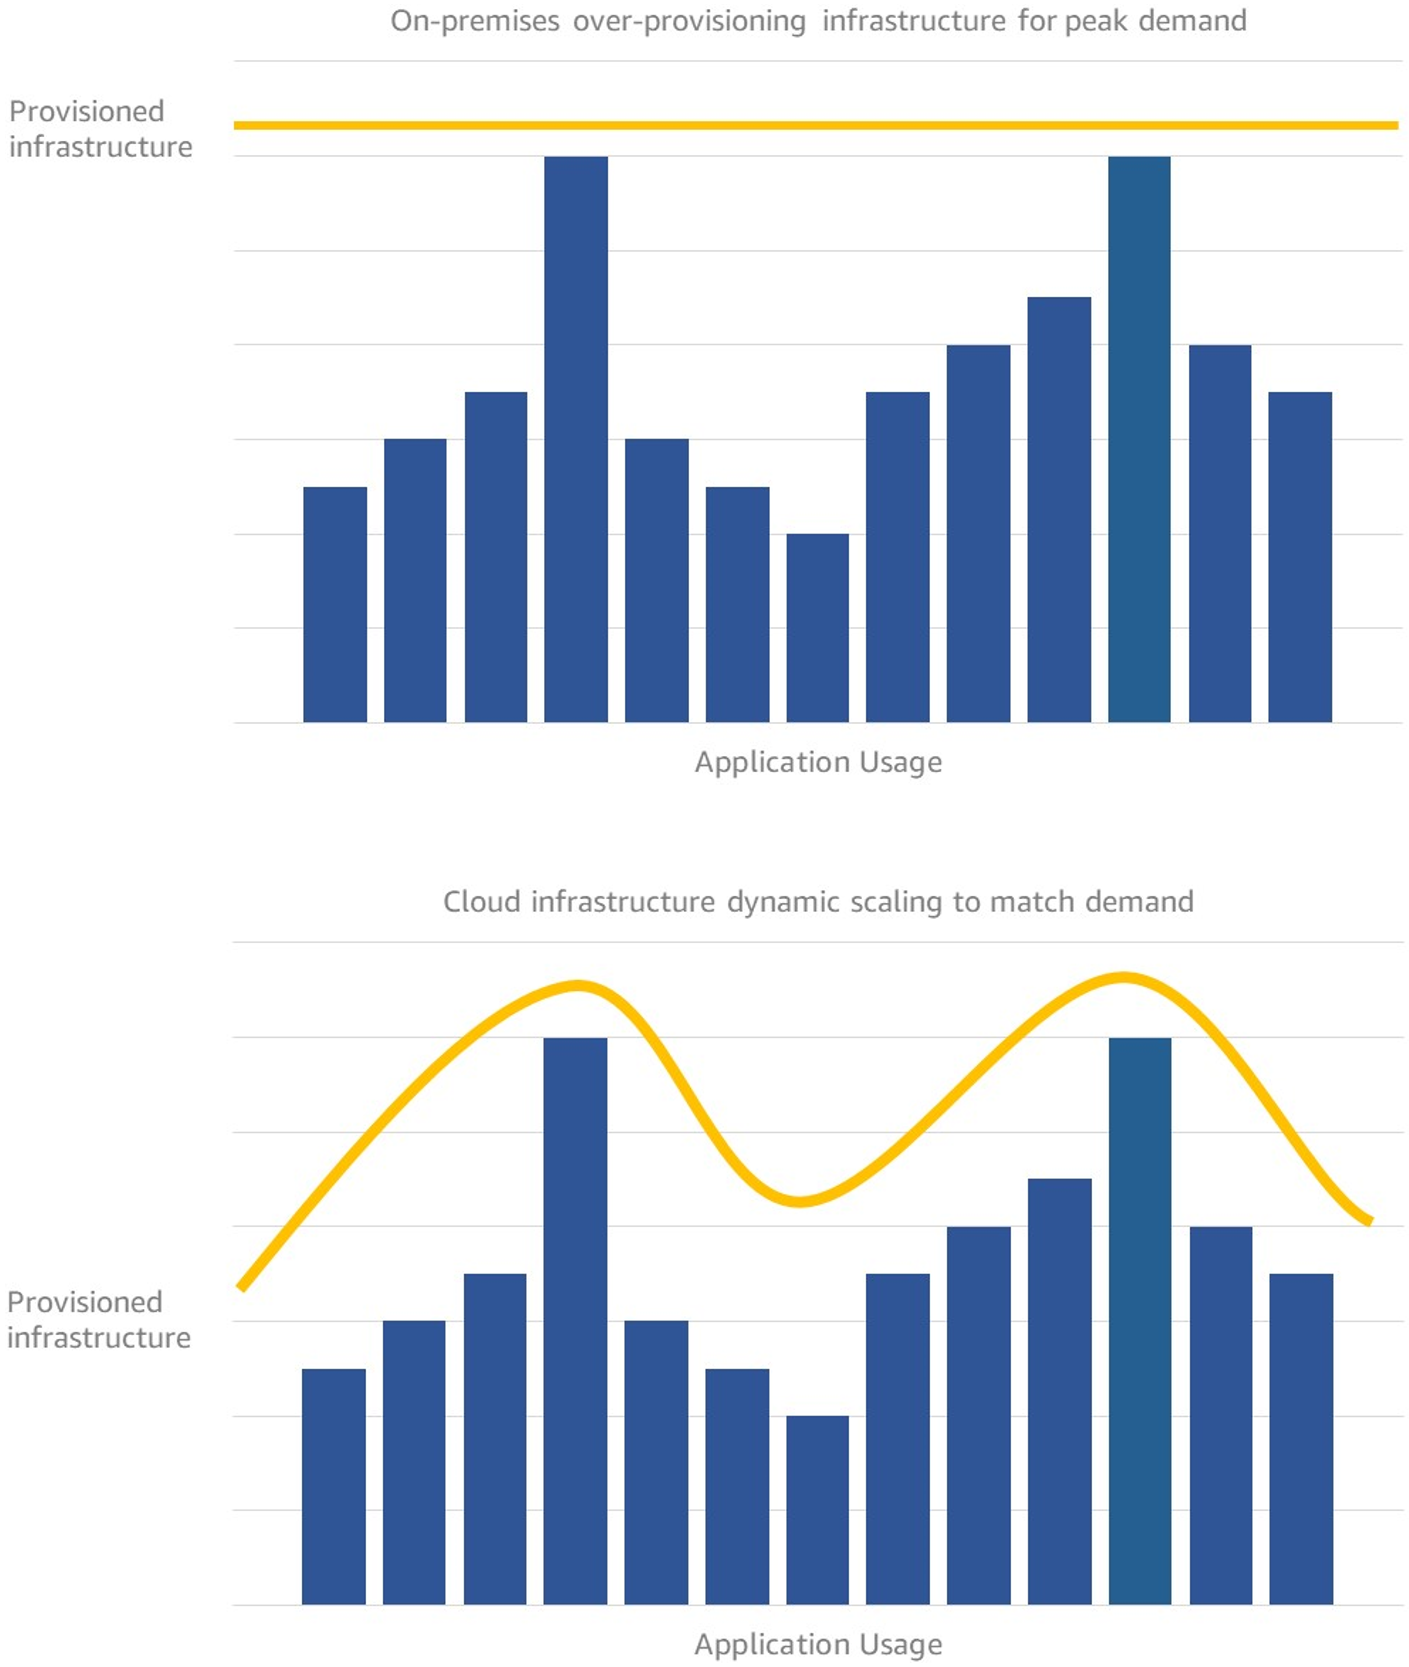 Comparing on-premises vs. cloud infrastructure provisioning